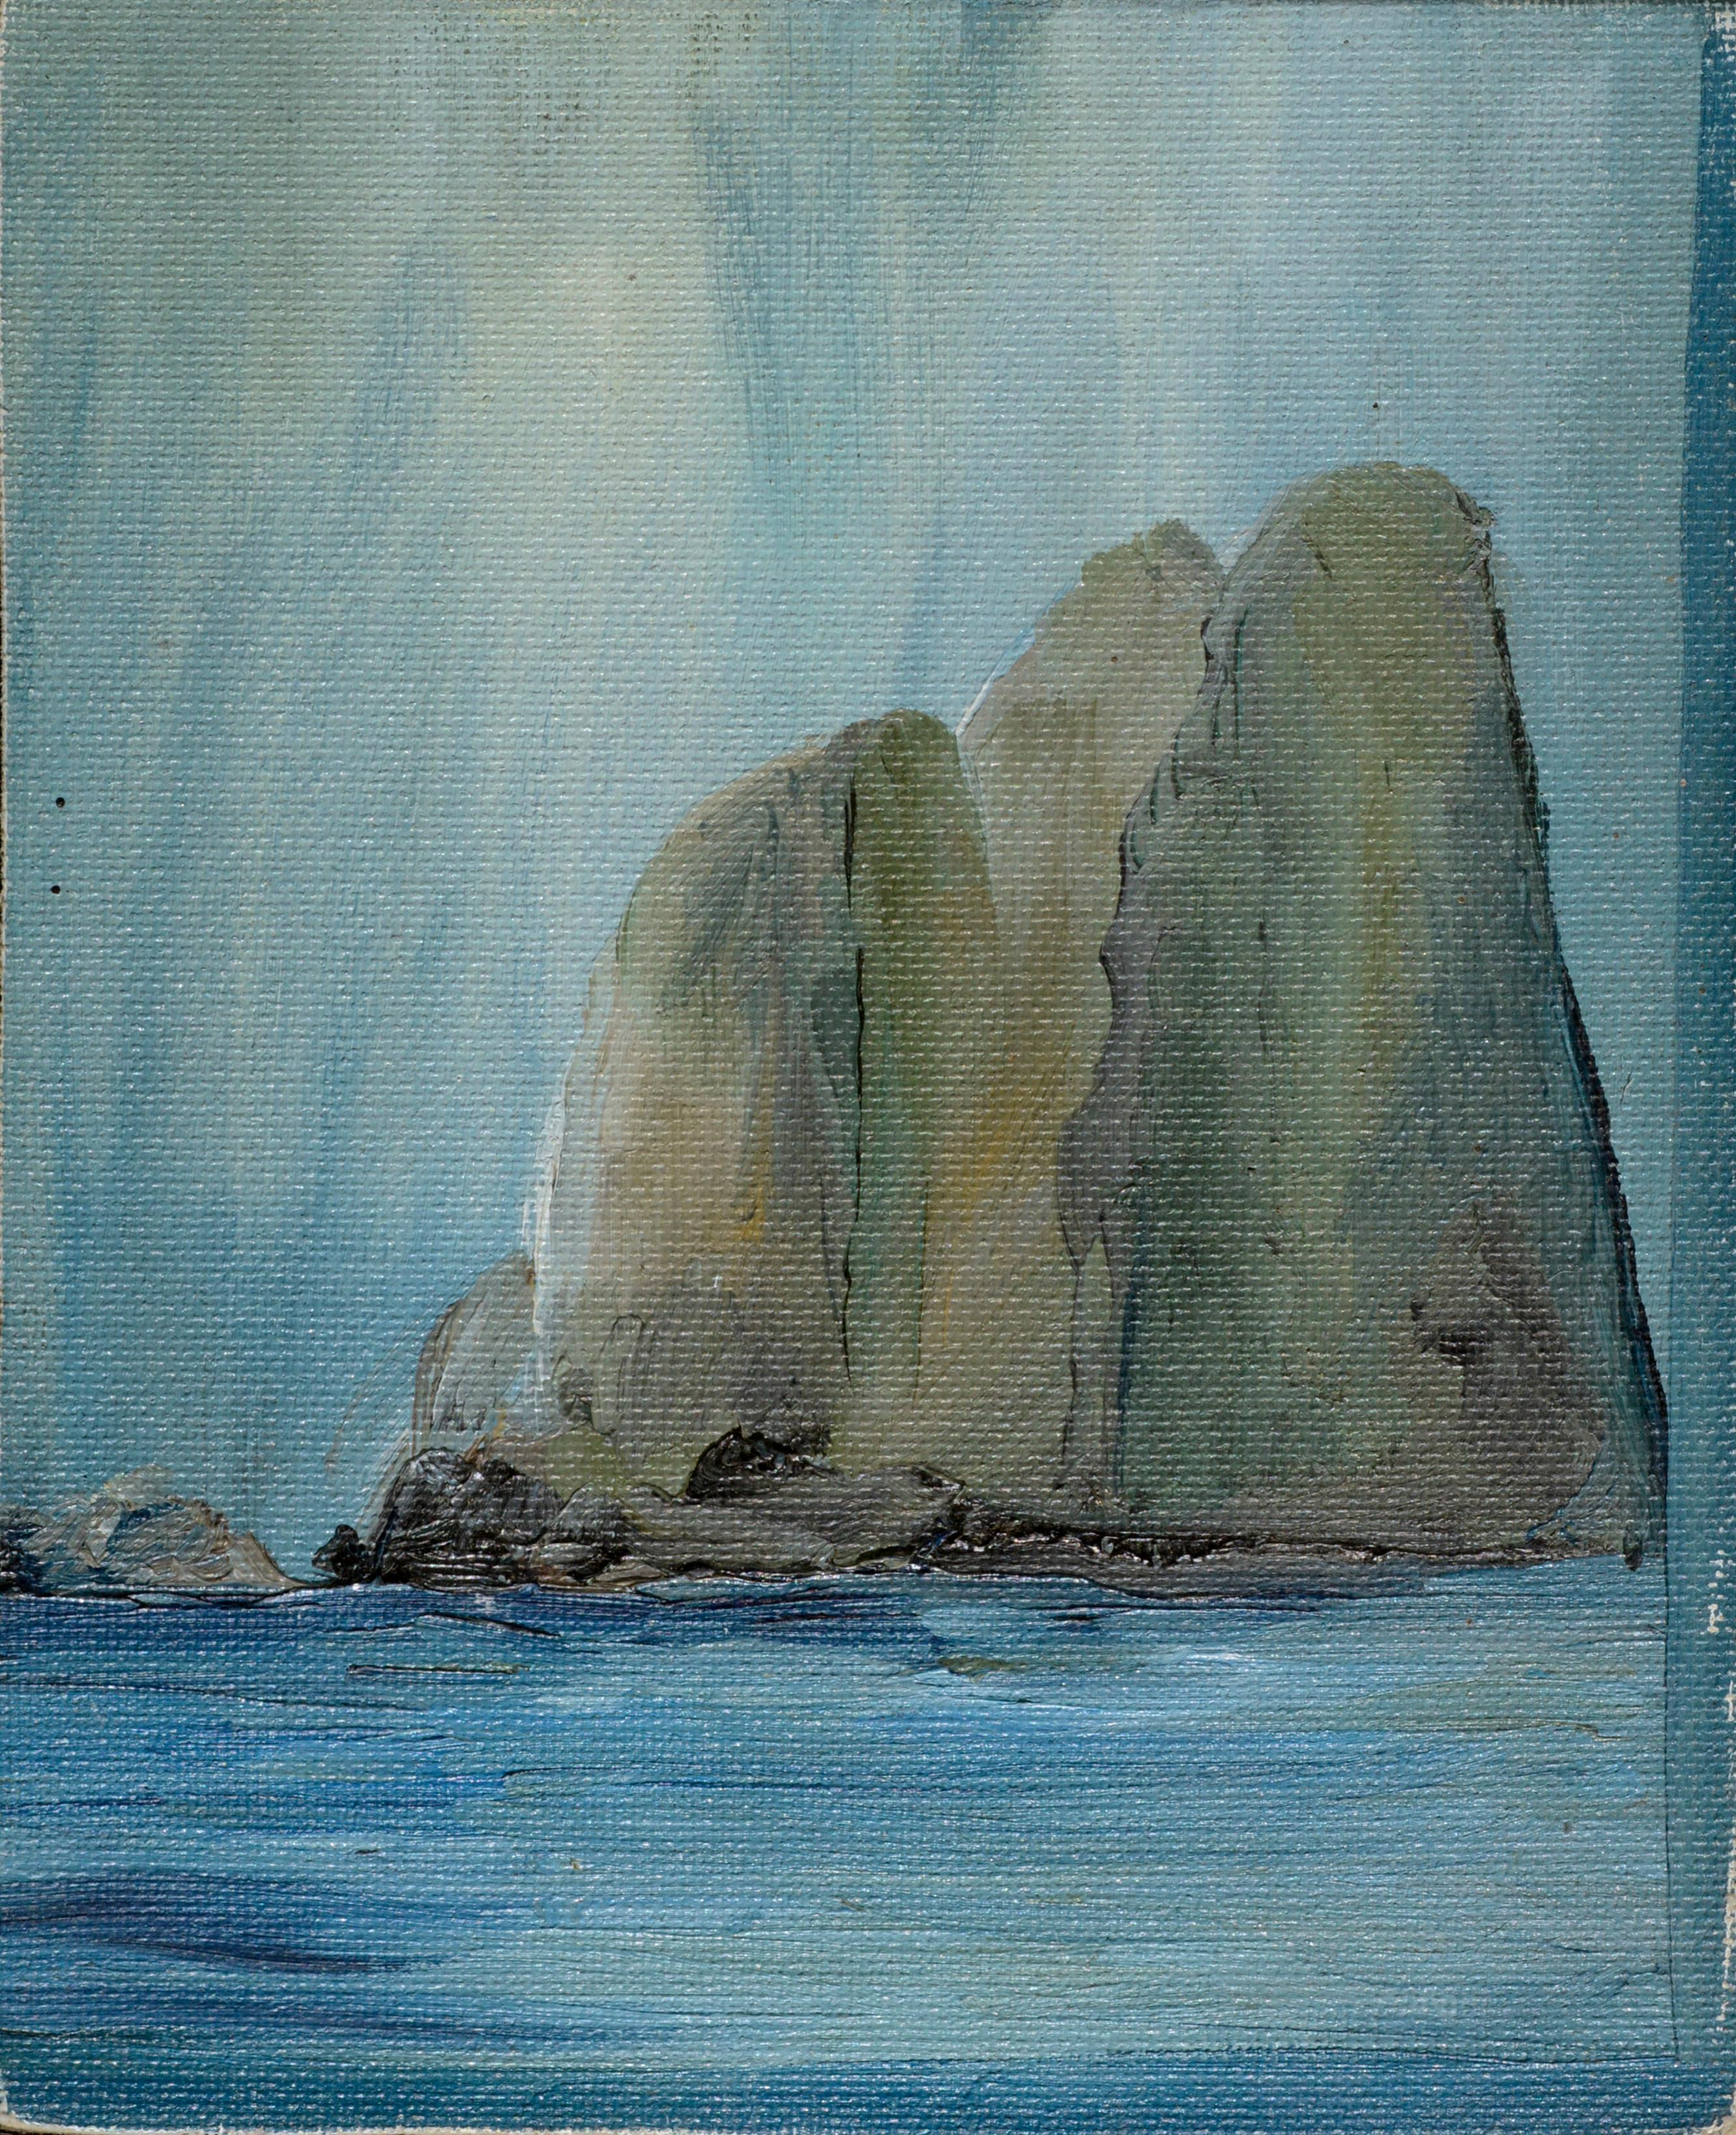 Three Large Cliffs in the Sea